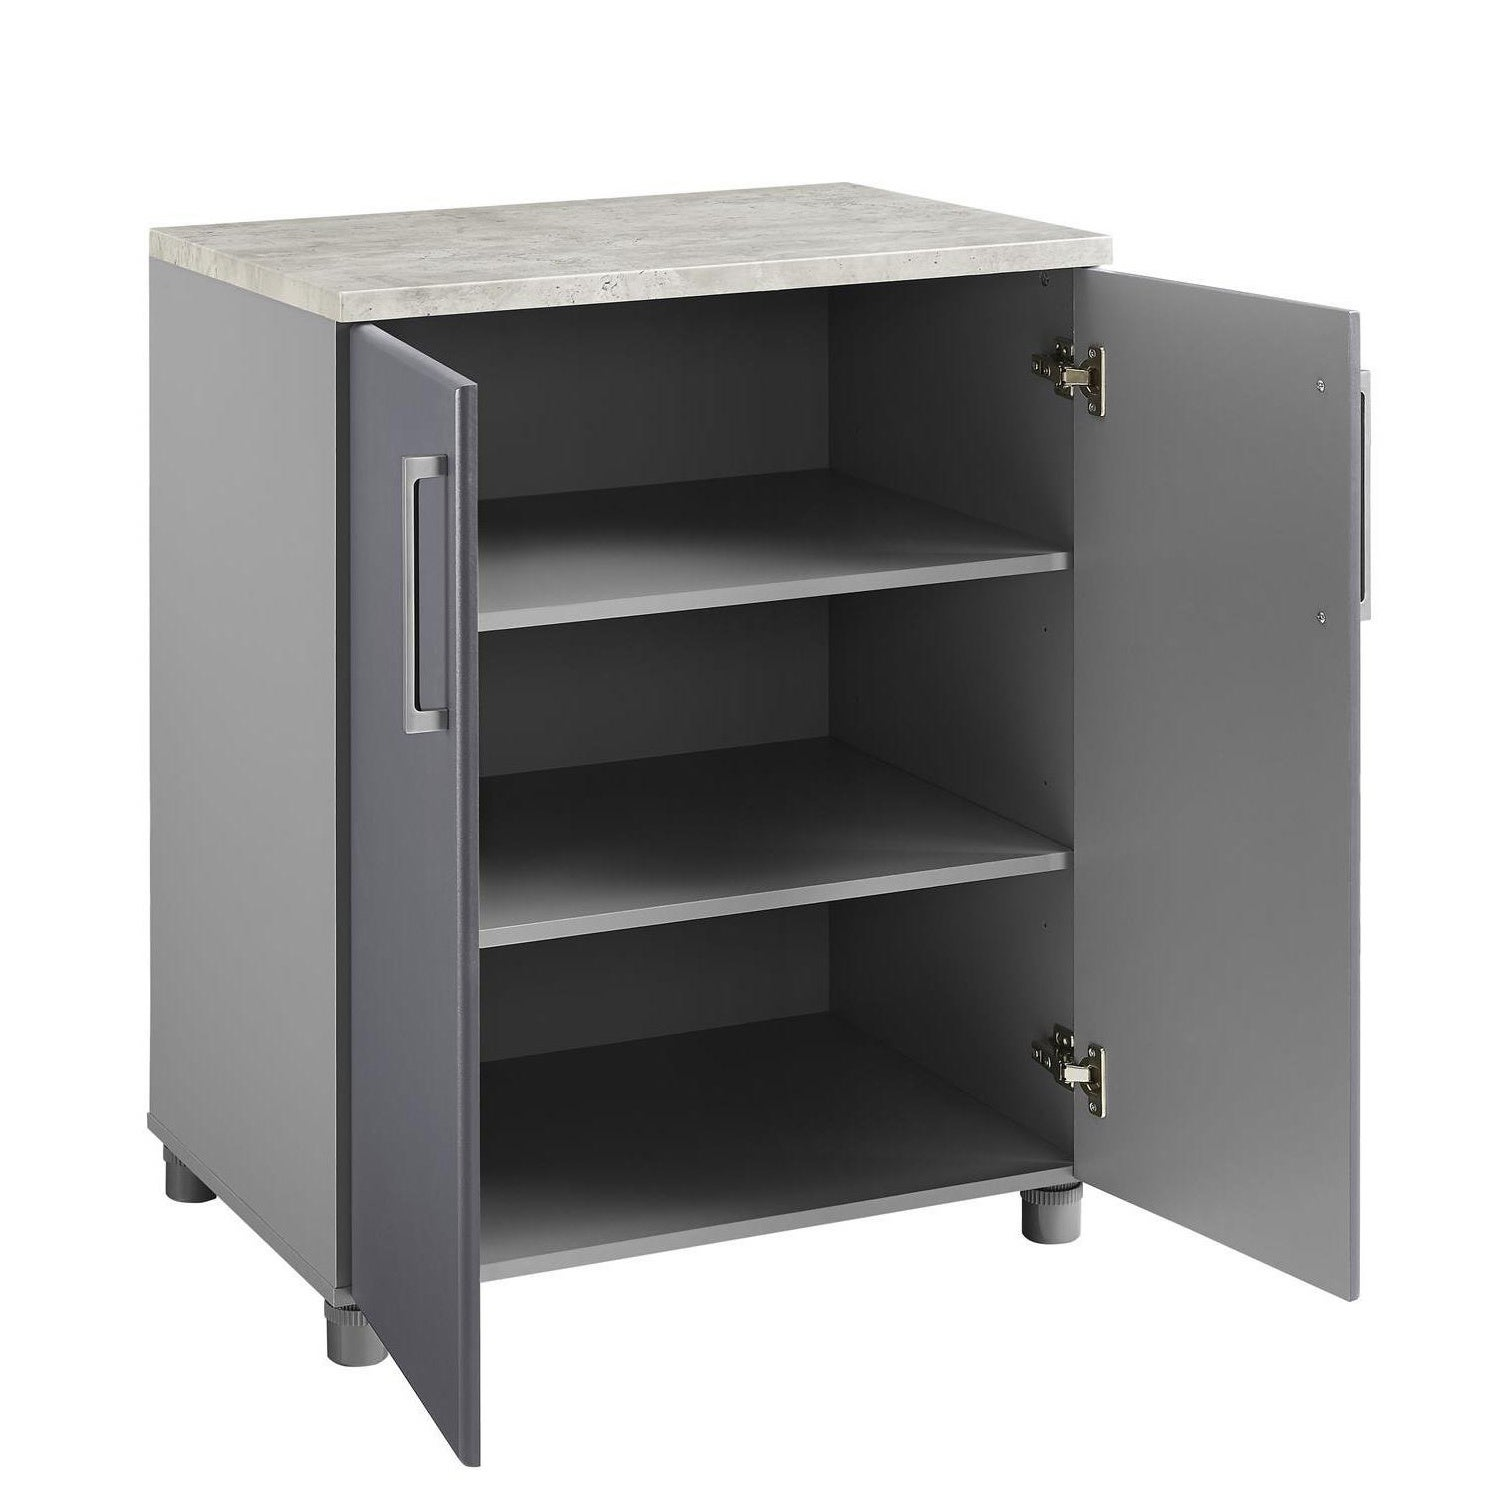 Systembuild Latitude 2 Door Base Cabinet Free Shipping Today